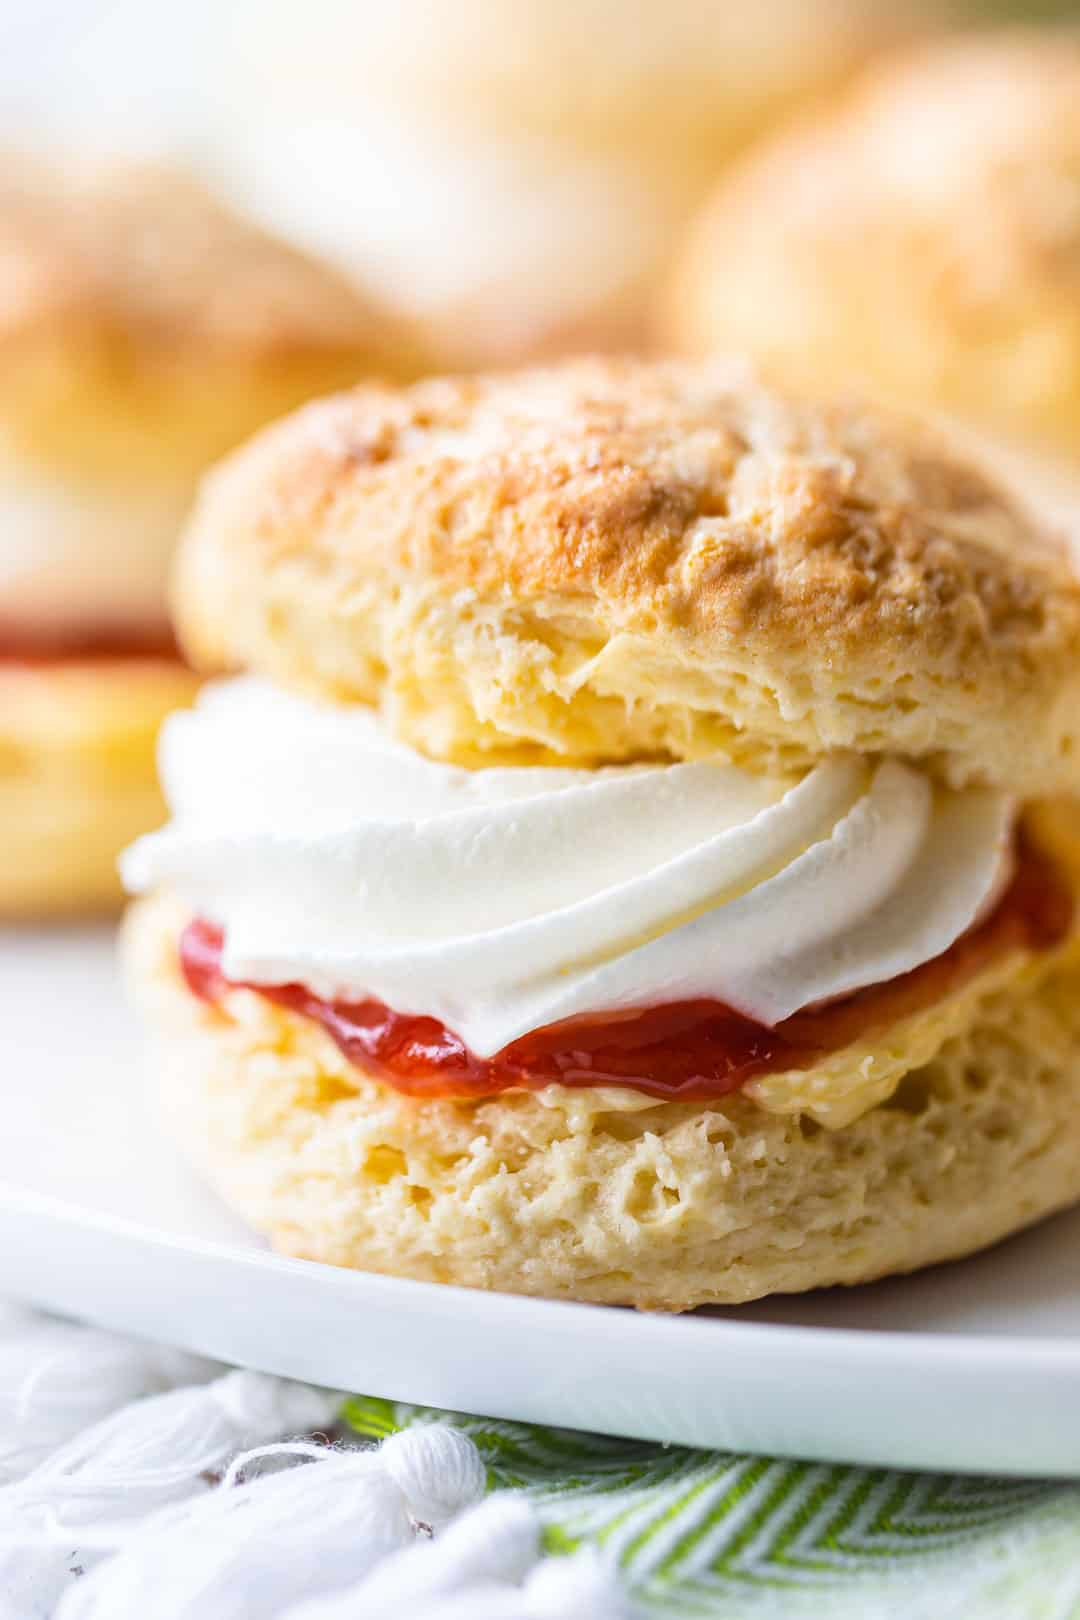 Scones recipe, easy to make and served with butter, strawberry jam, and whipped cream.